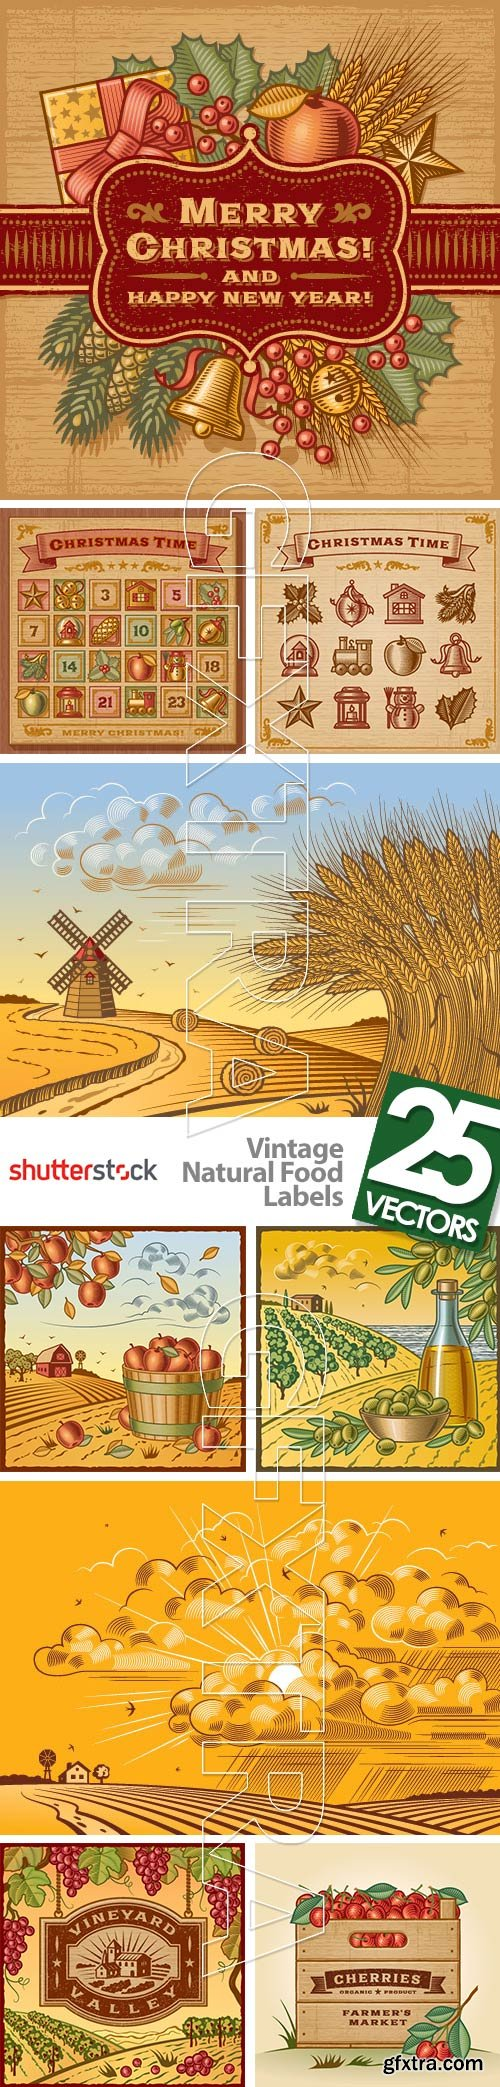 Vintage Natural Food Labels 25xEPS